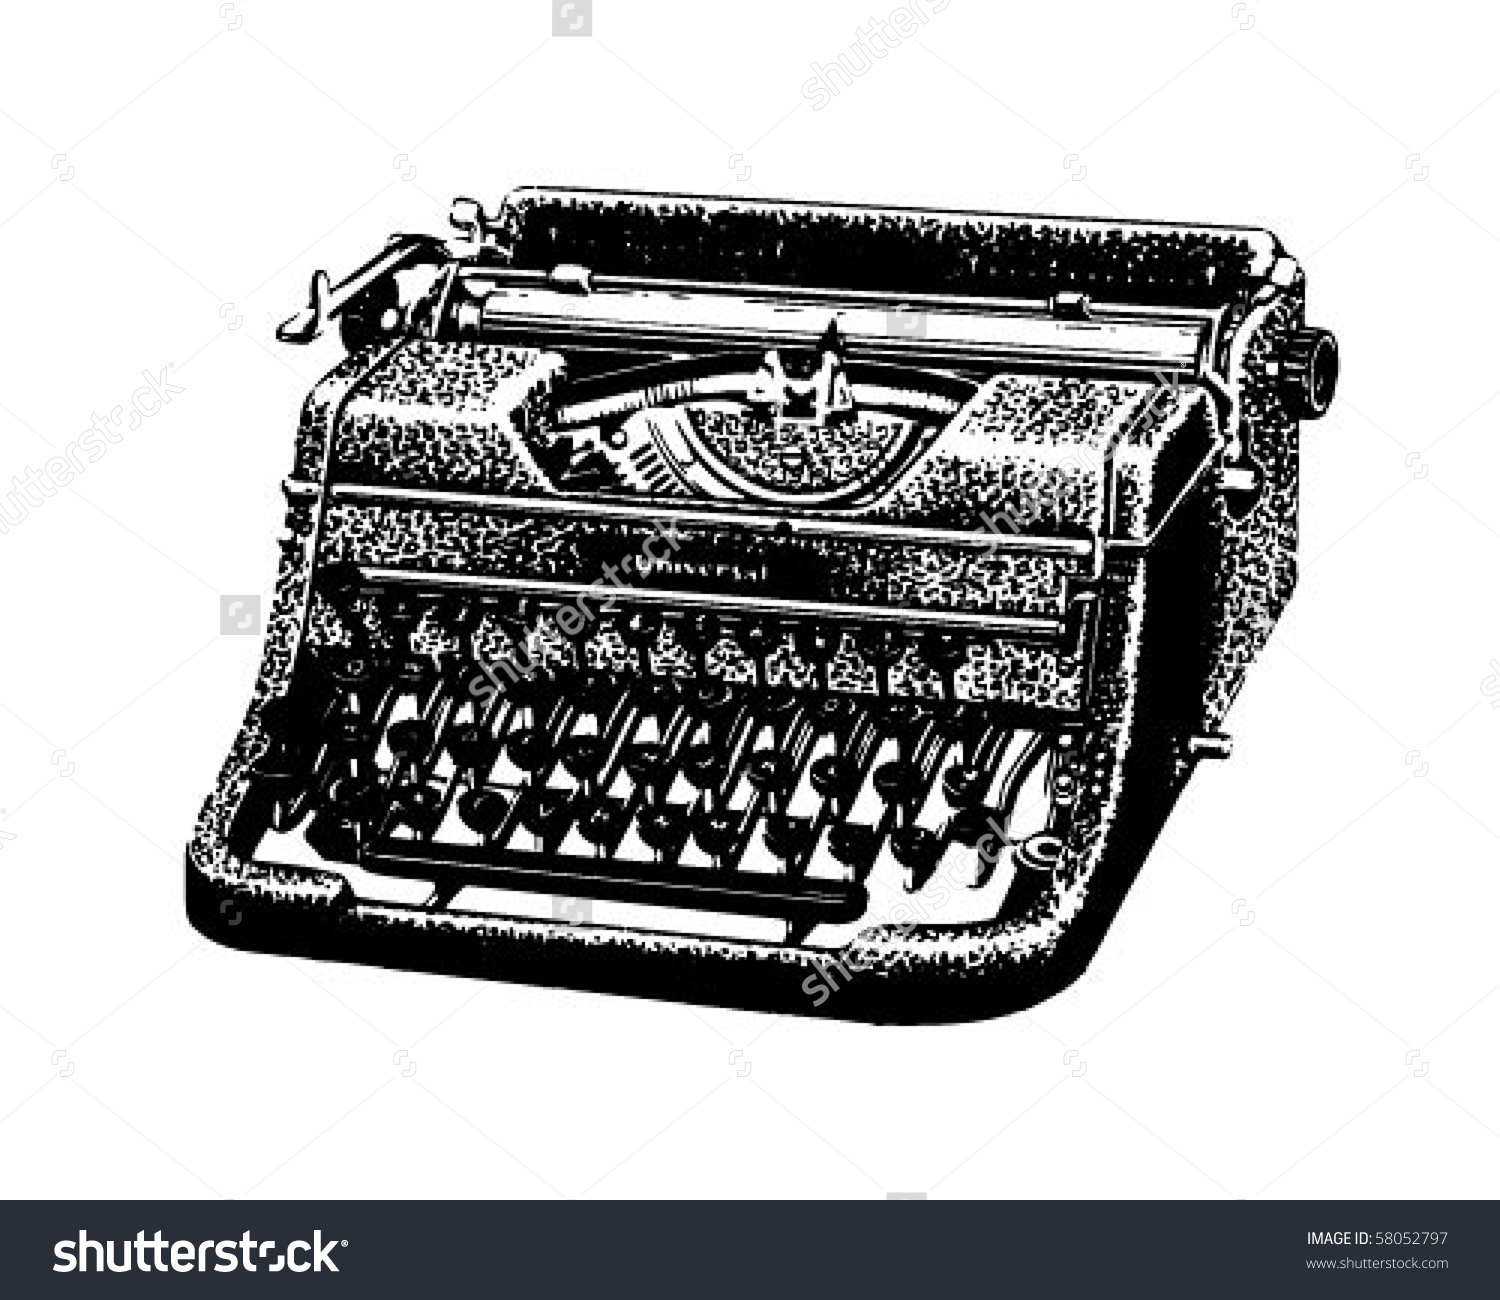 Vintage Typewriter - Retro Clip Art-Vintage Typewriter - Retro Clip Art-6